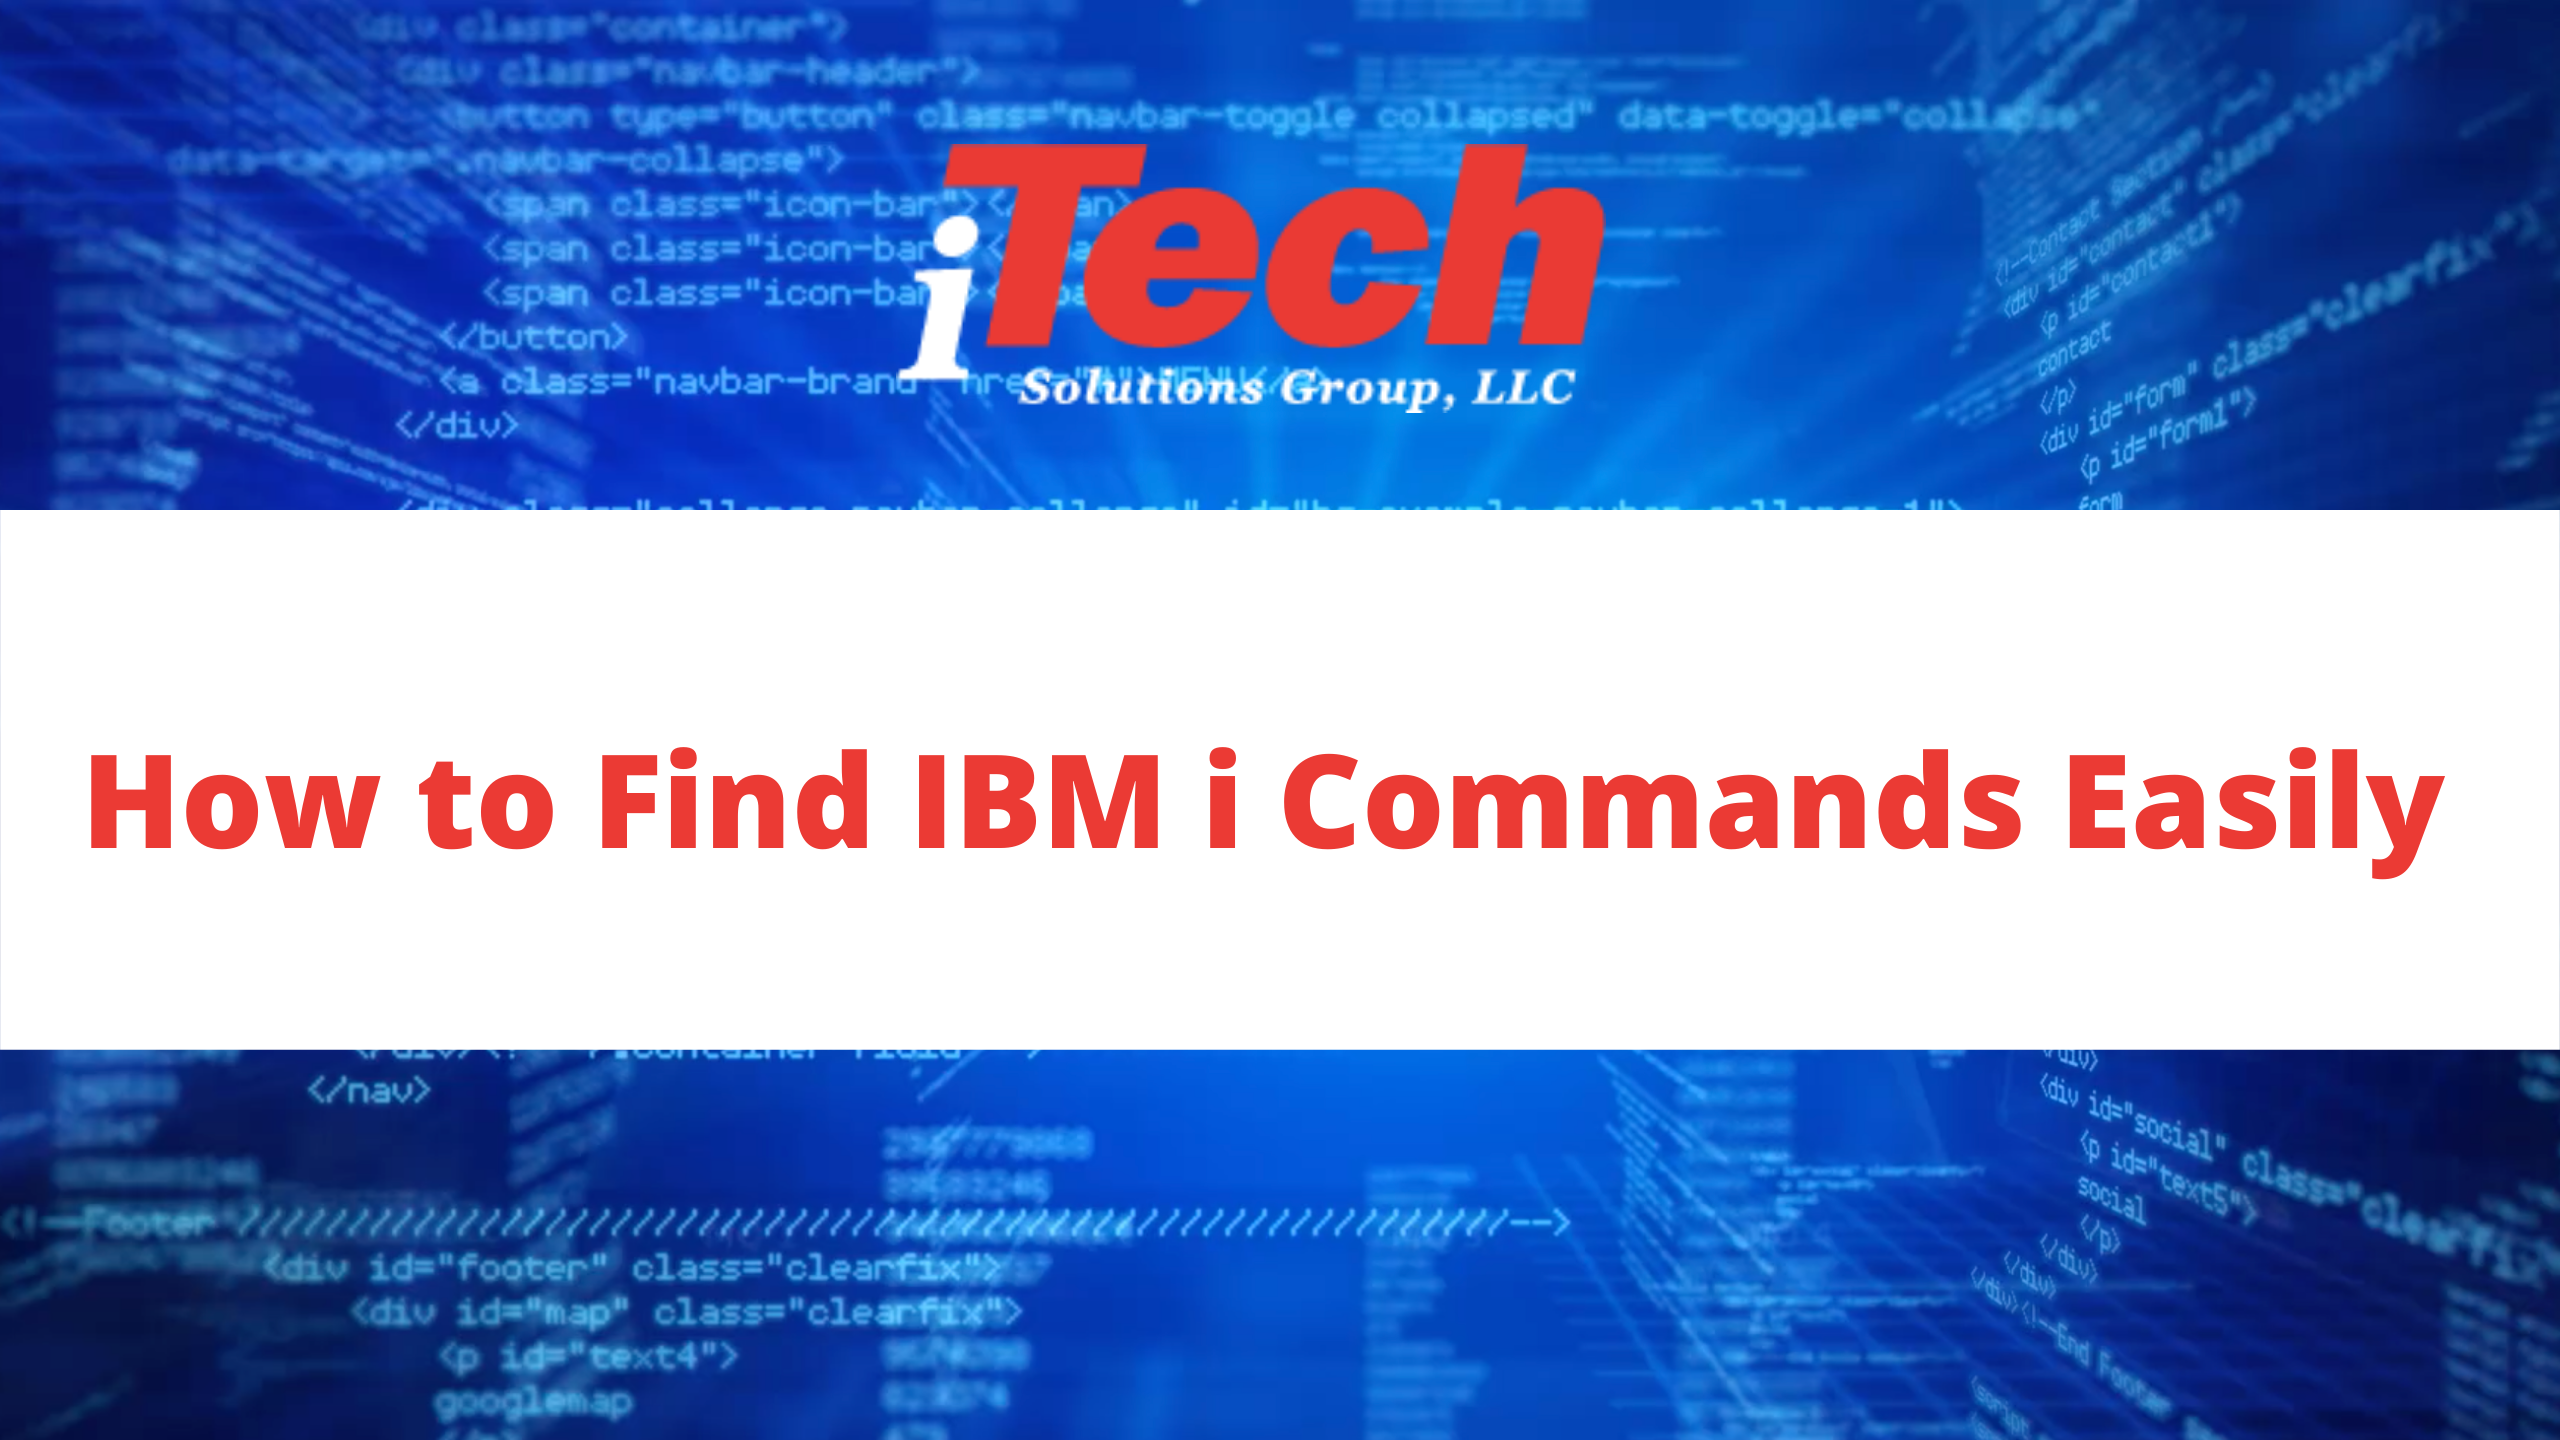 How to Find IBM i Commands Easily